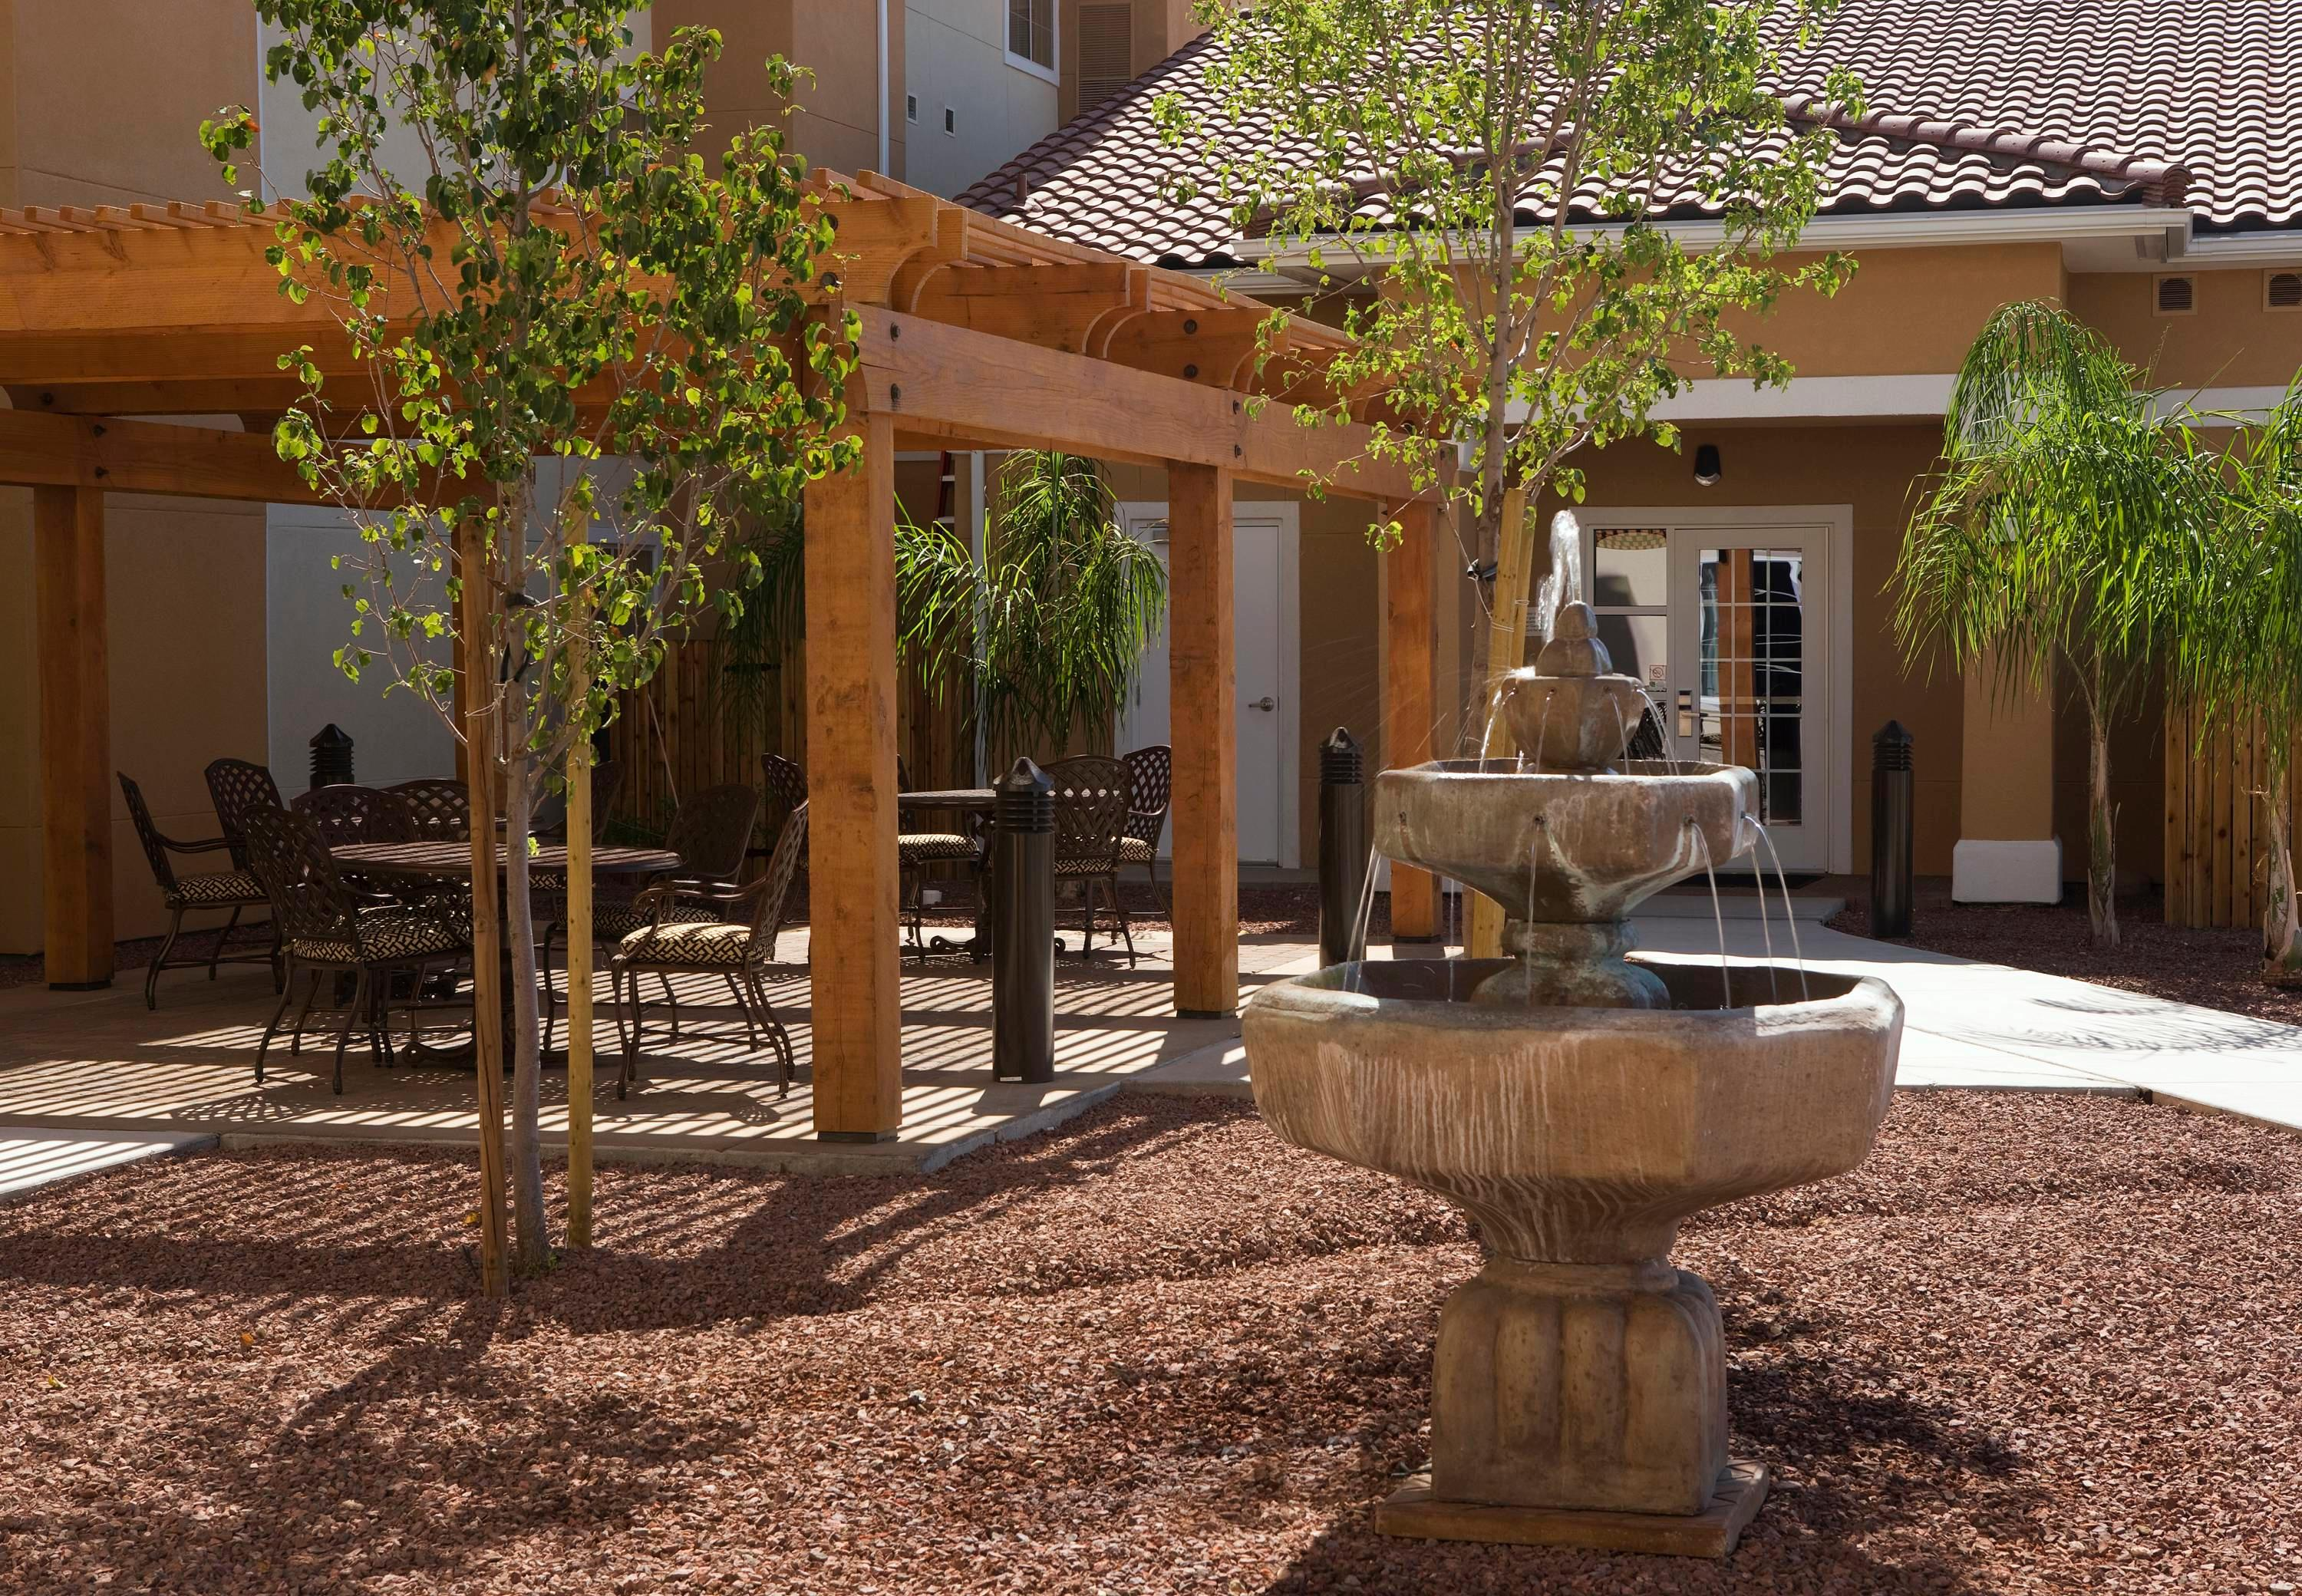 TownePlace Suites by Marriott Tucson Airport image 5